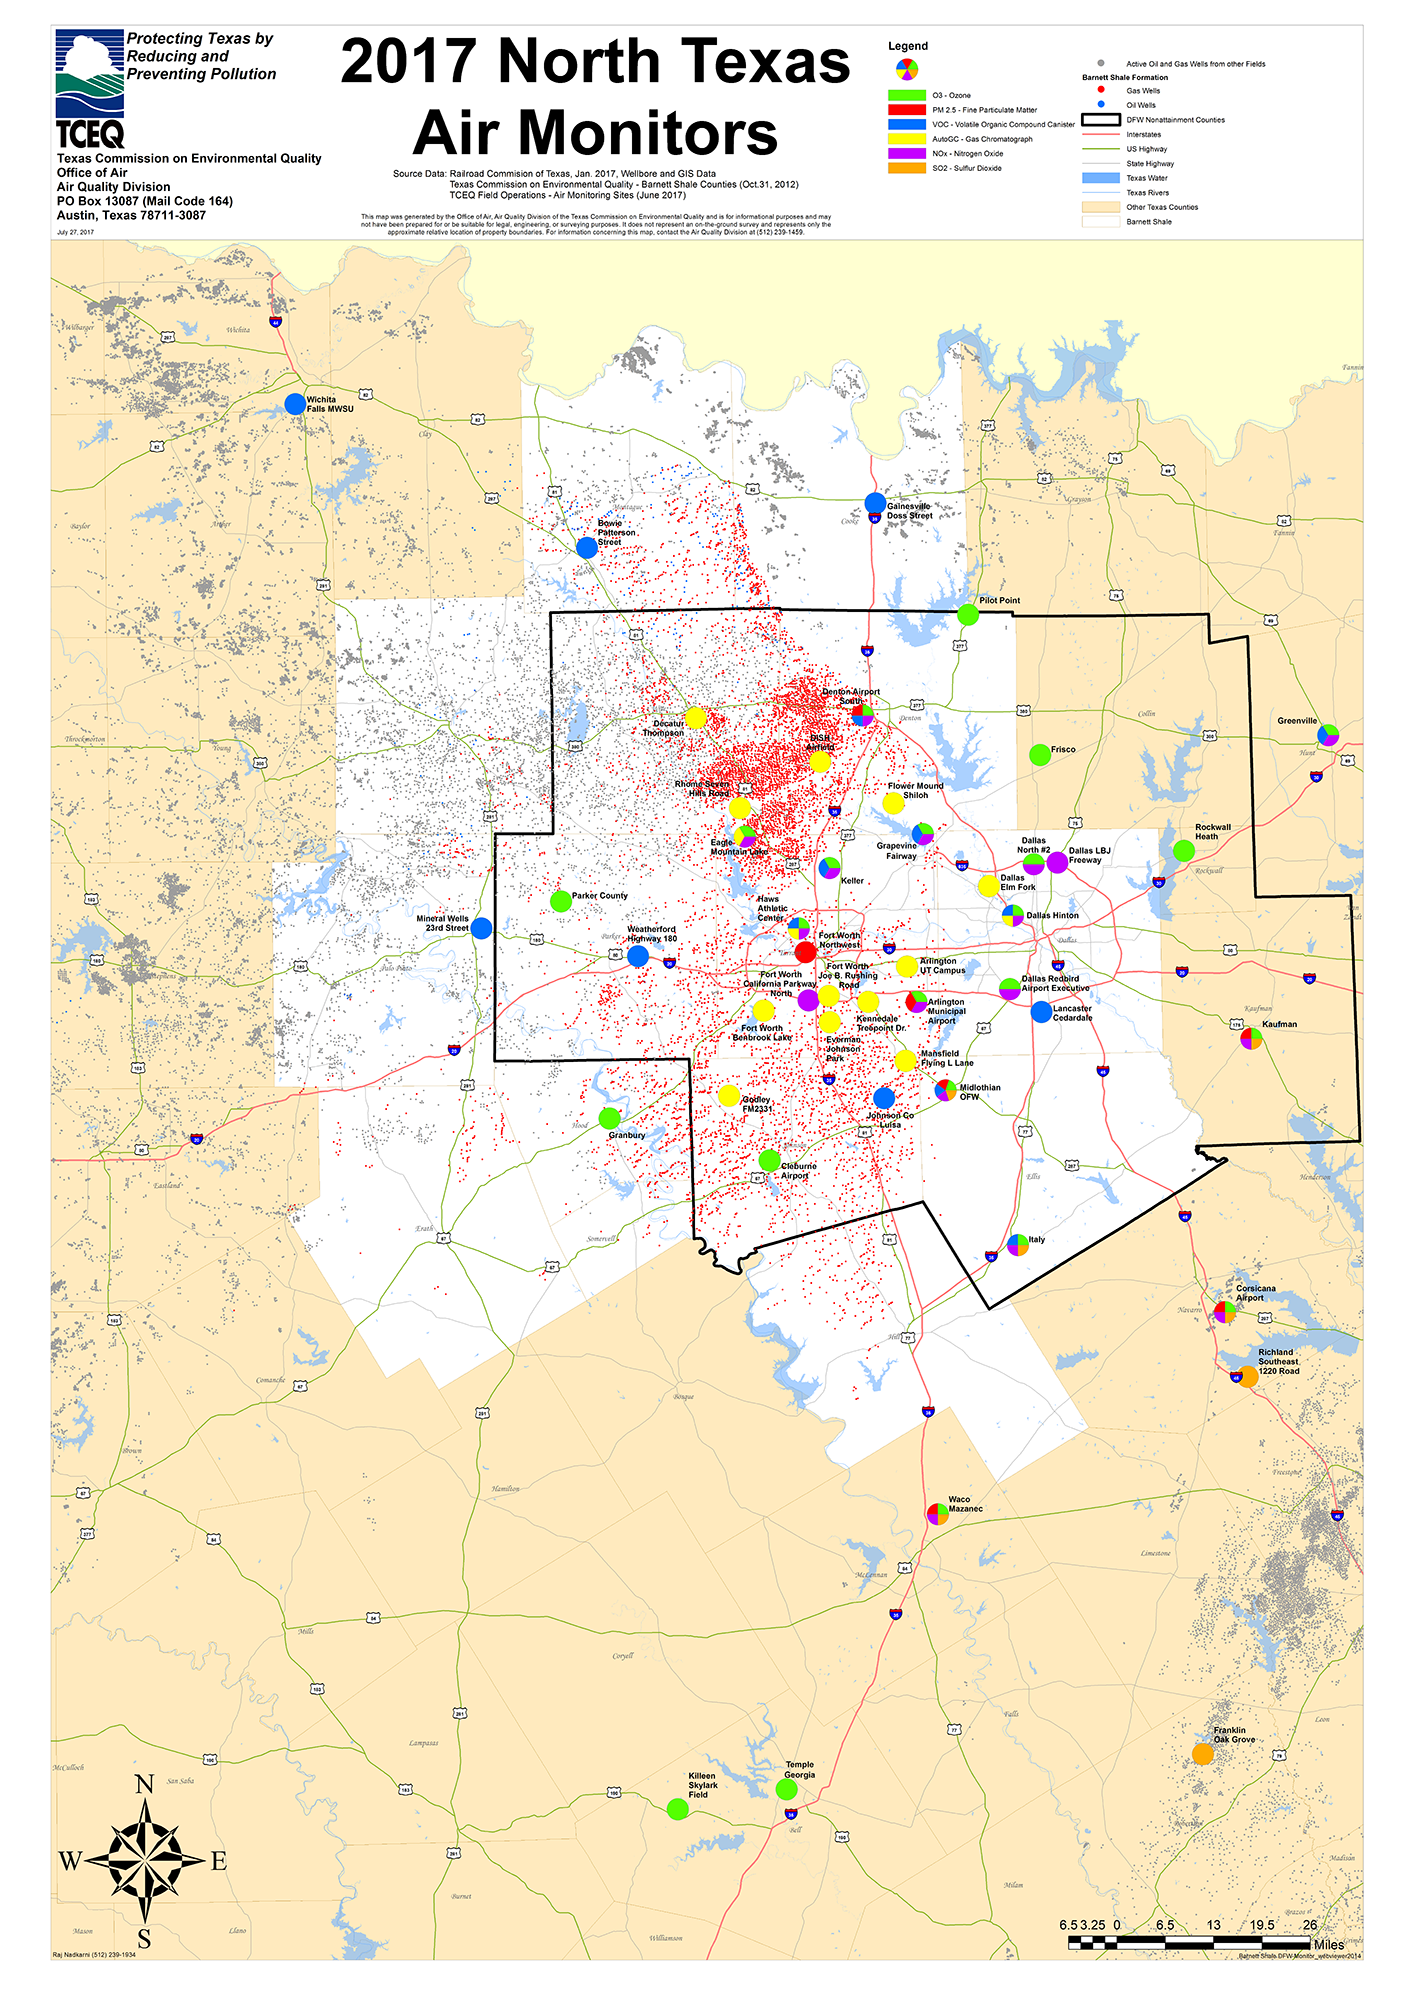 Barnett Shale Maps And Charts TCEQ Wwwtceqtexasgov - North texas map